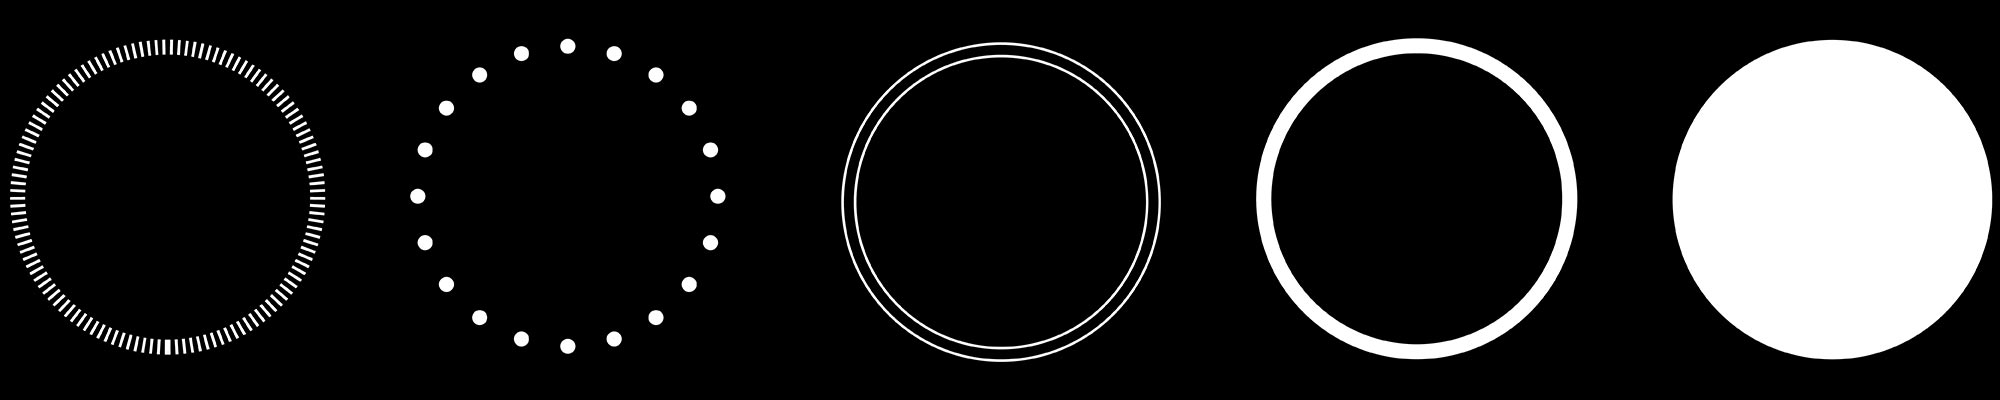 Lukes-Approach-circles